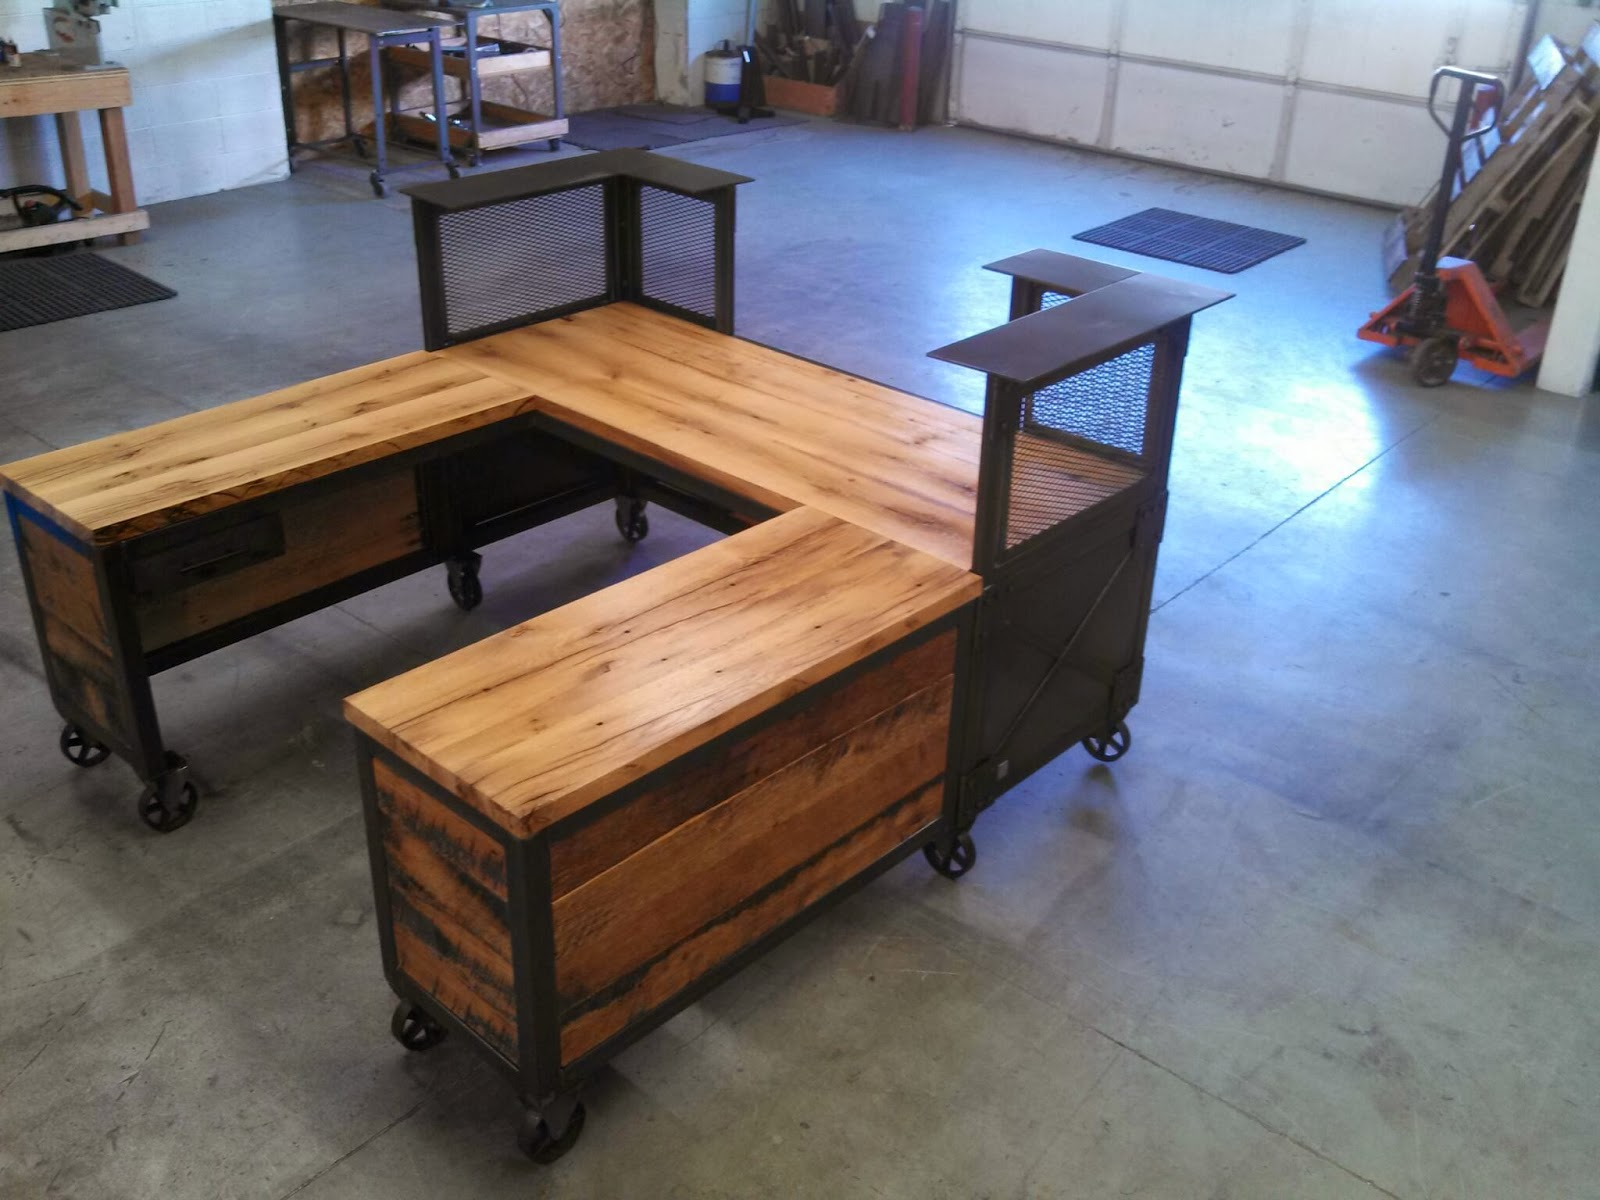 Real Industrial Edge Furniture Llc Industrial Reception Desk